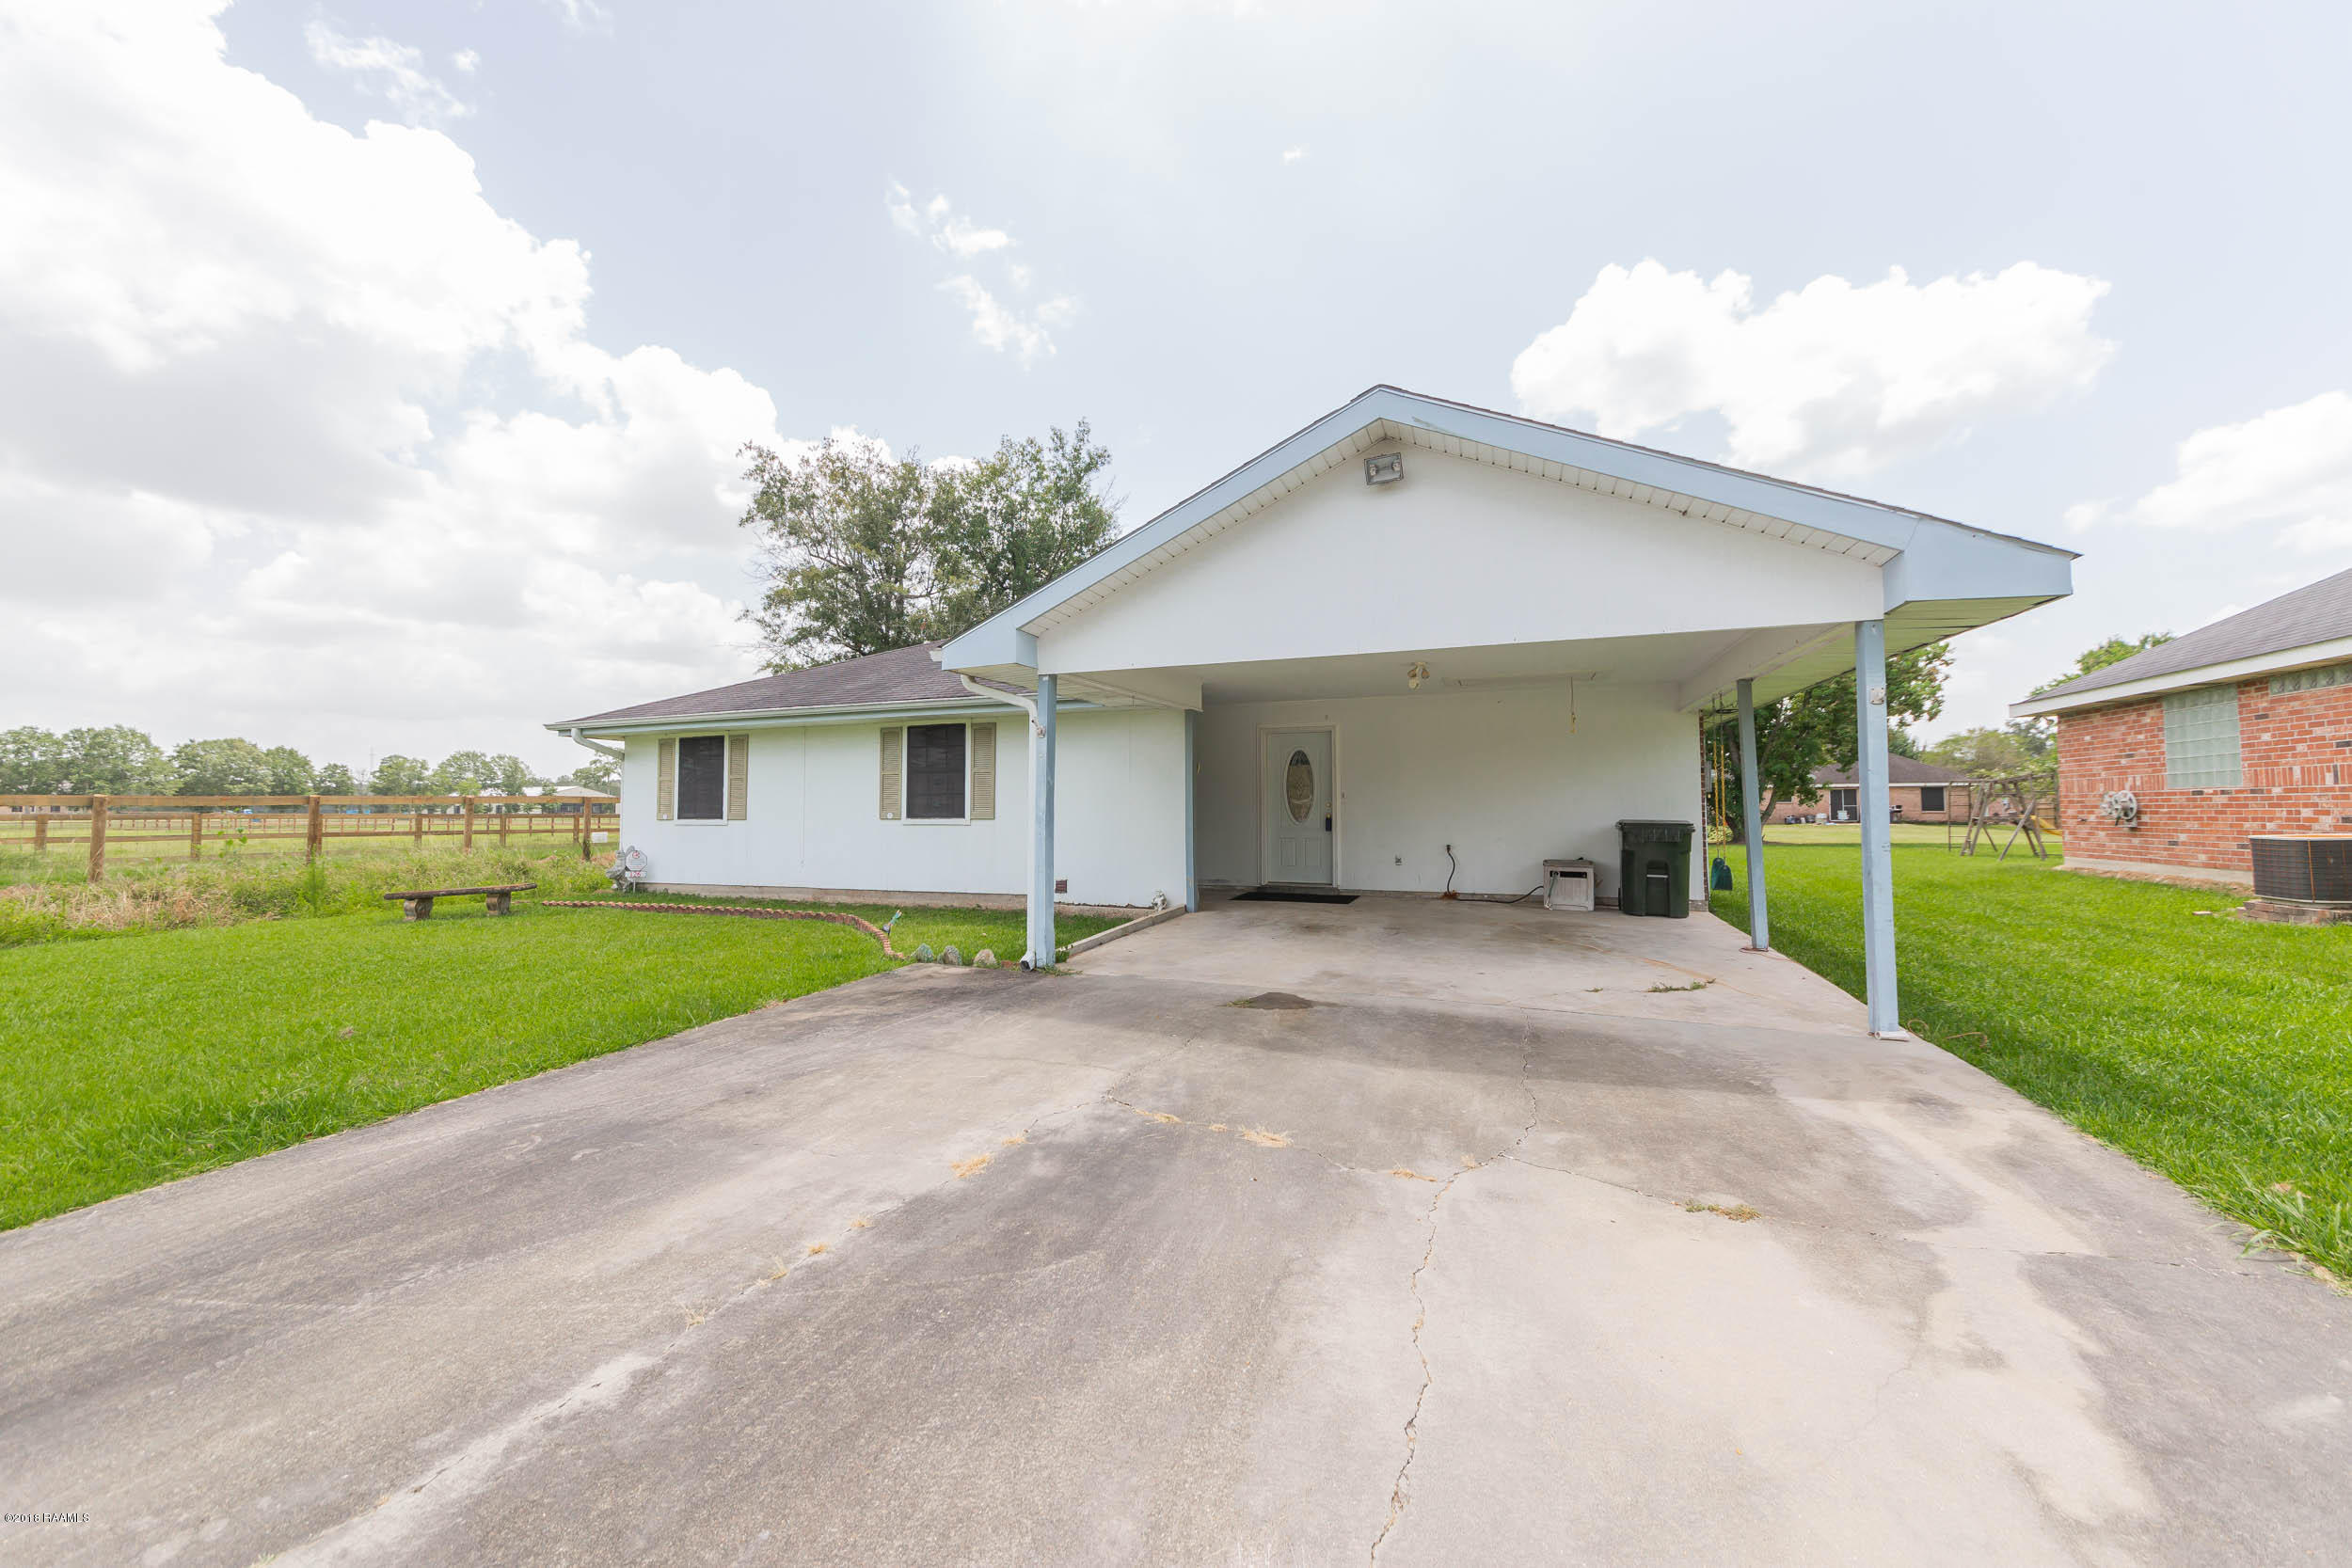 126 Bermuda Circle, Scott, LA 70583 Photo #2